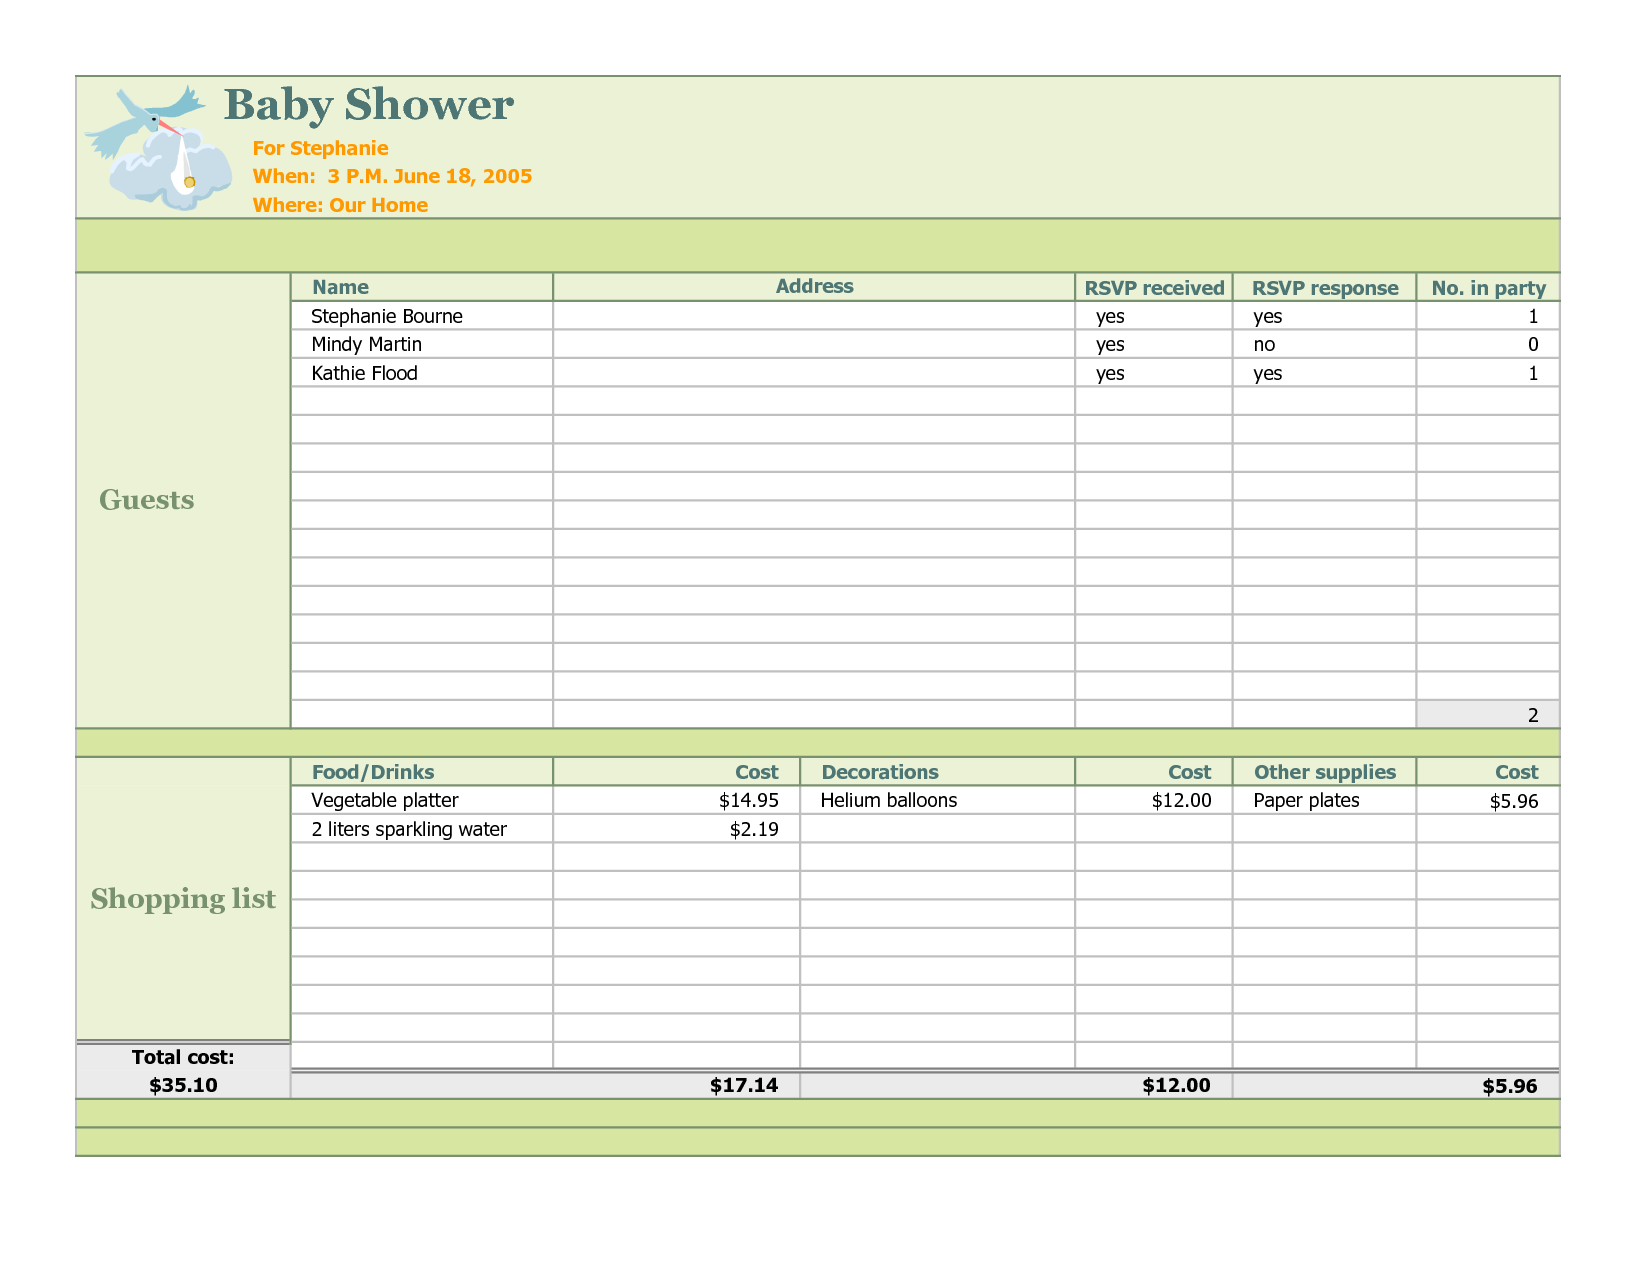 Baby Shower Planning Checklist  Baby Shower Planner Excel